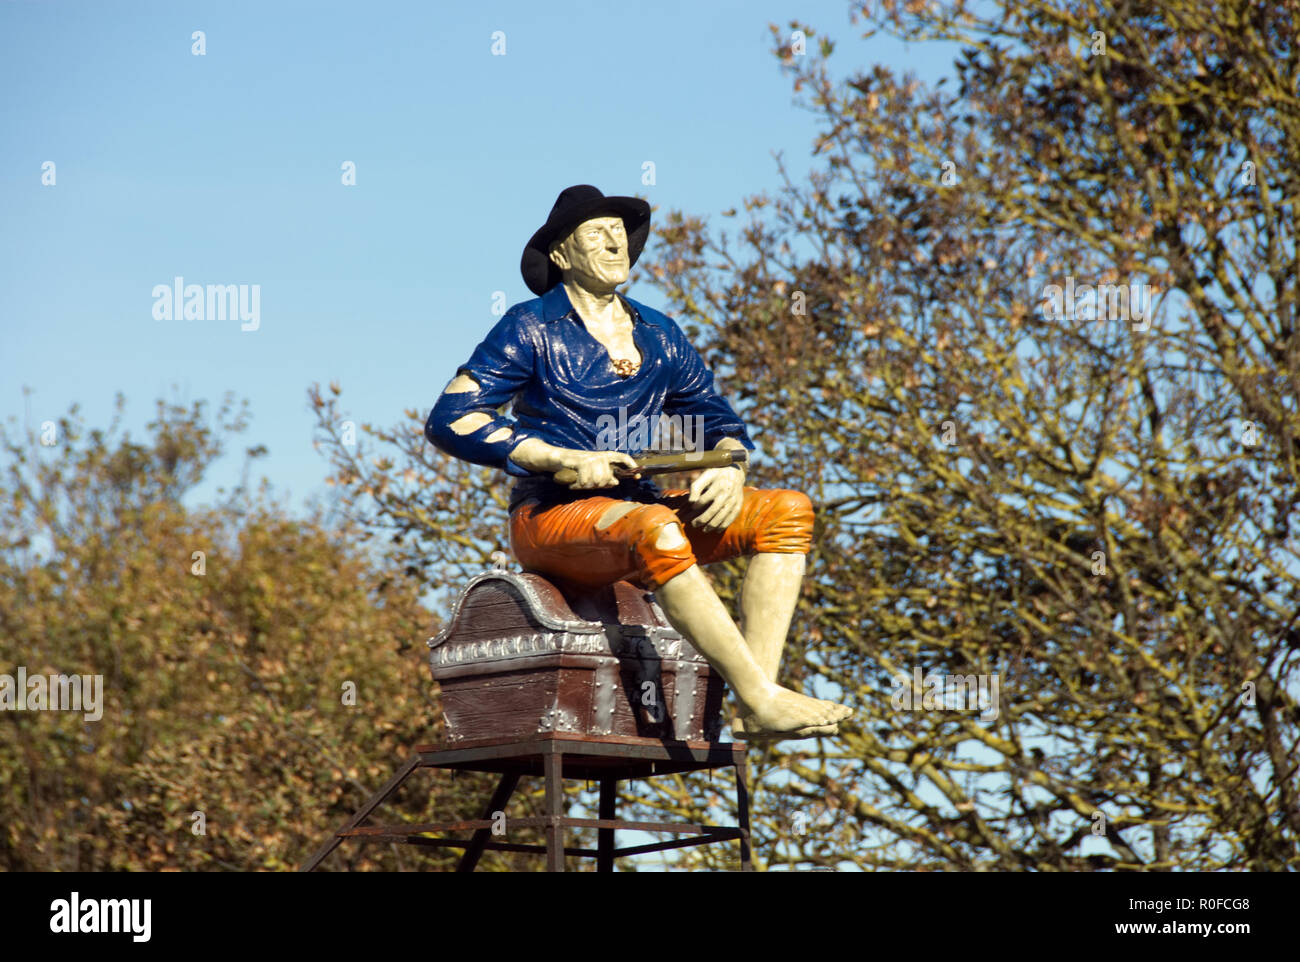 Model of poorly-dressed man sitting on trunk, with pistol in his hand, as 'Point of Sale' display outside closed shop, Hayling Island England - Stock Image